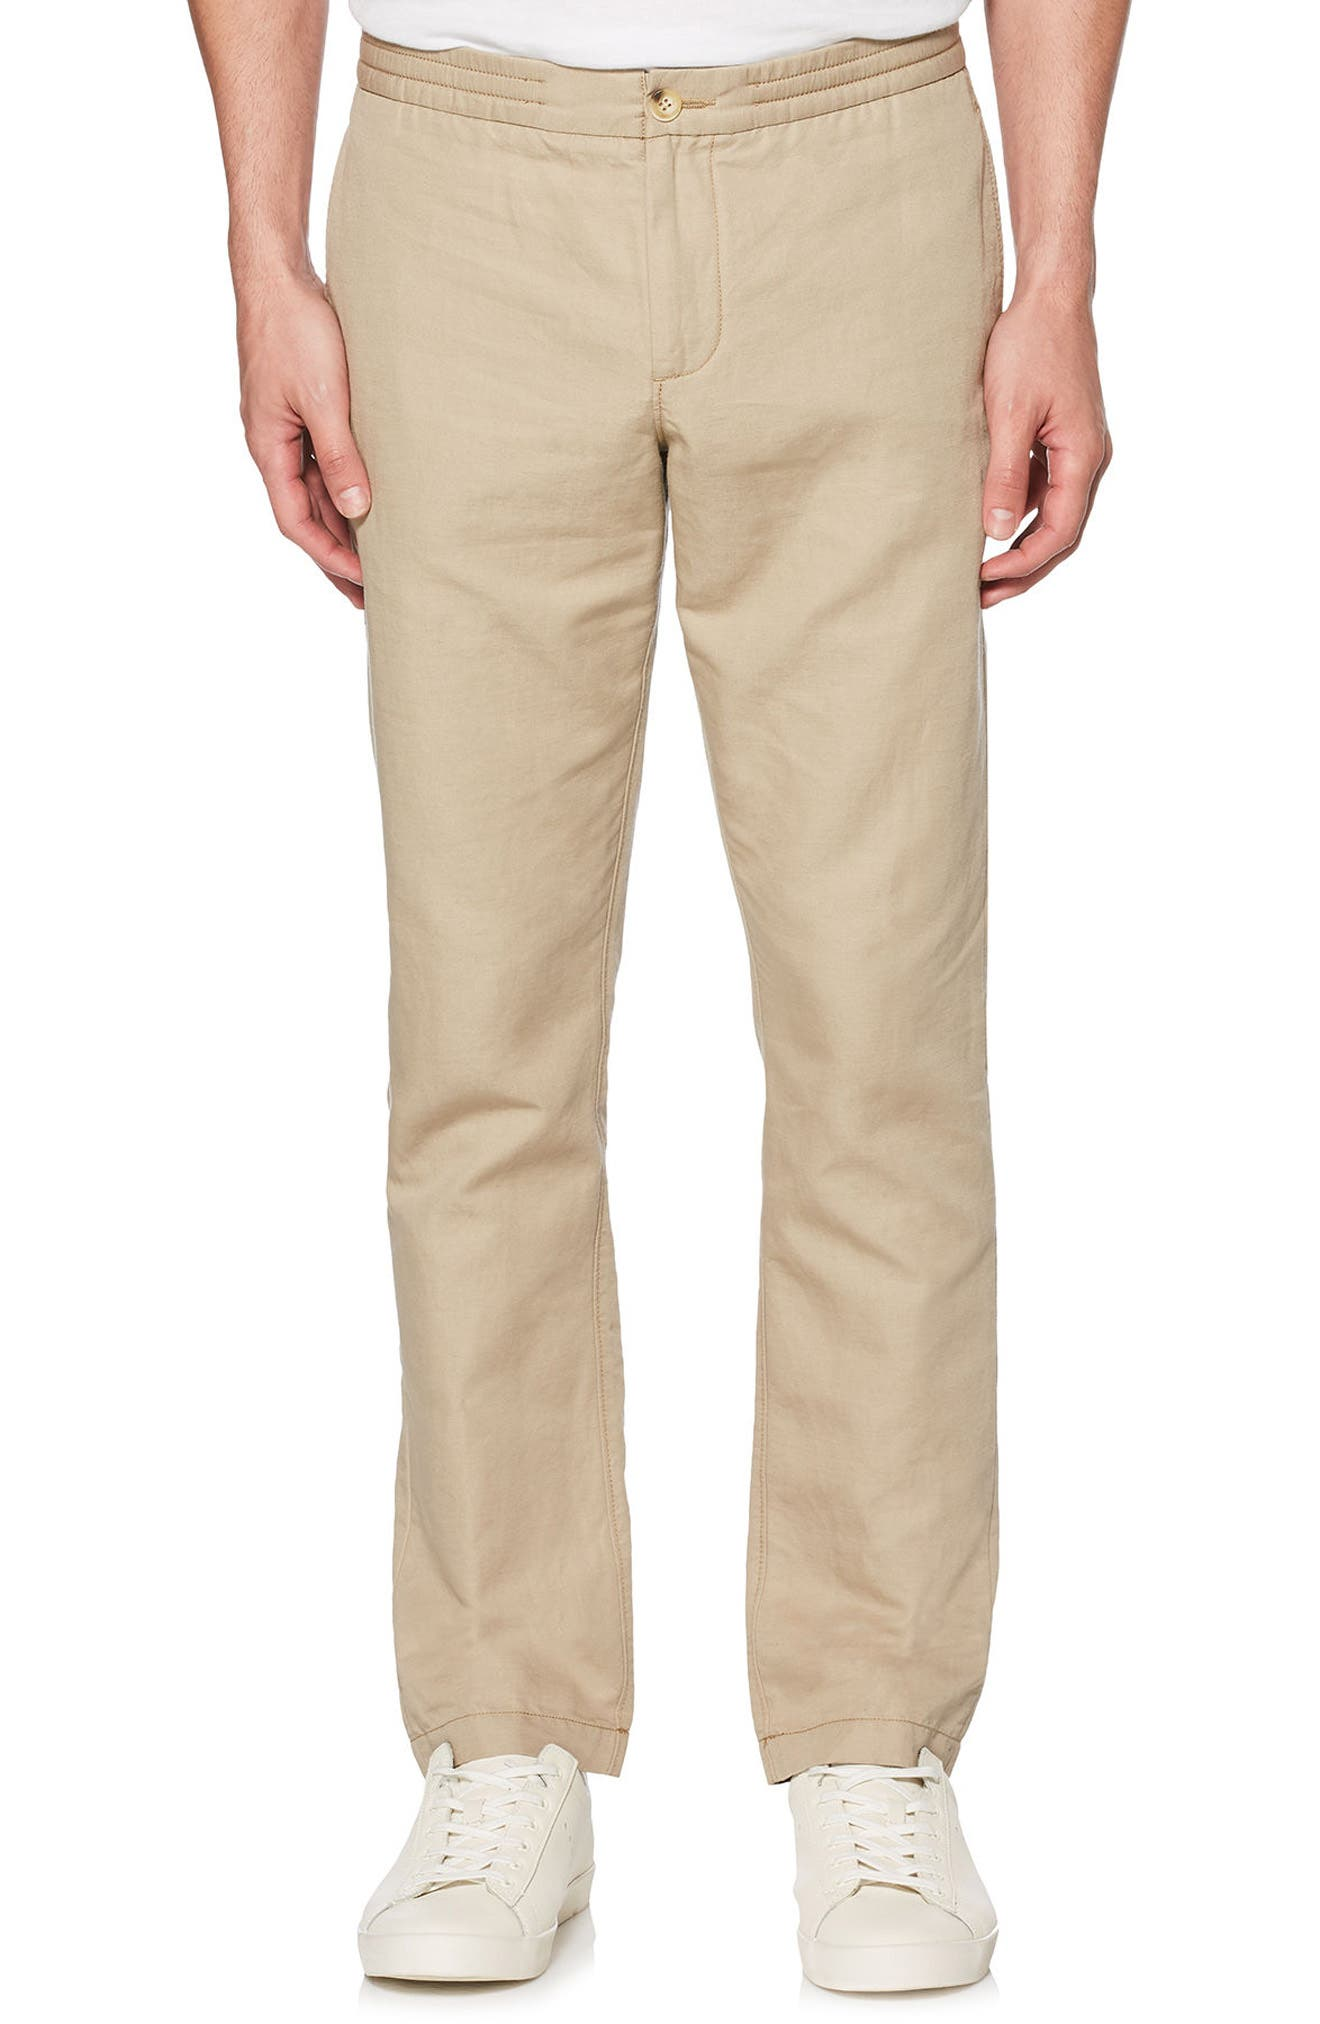 Linen Blend Pants,                         Main,                         color, 271